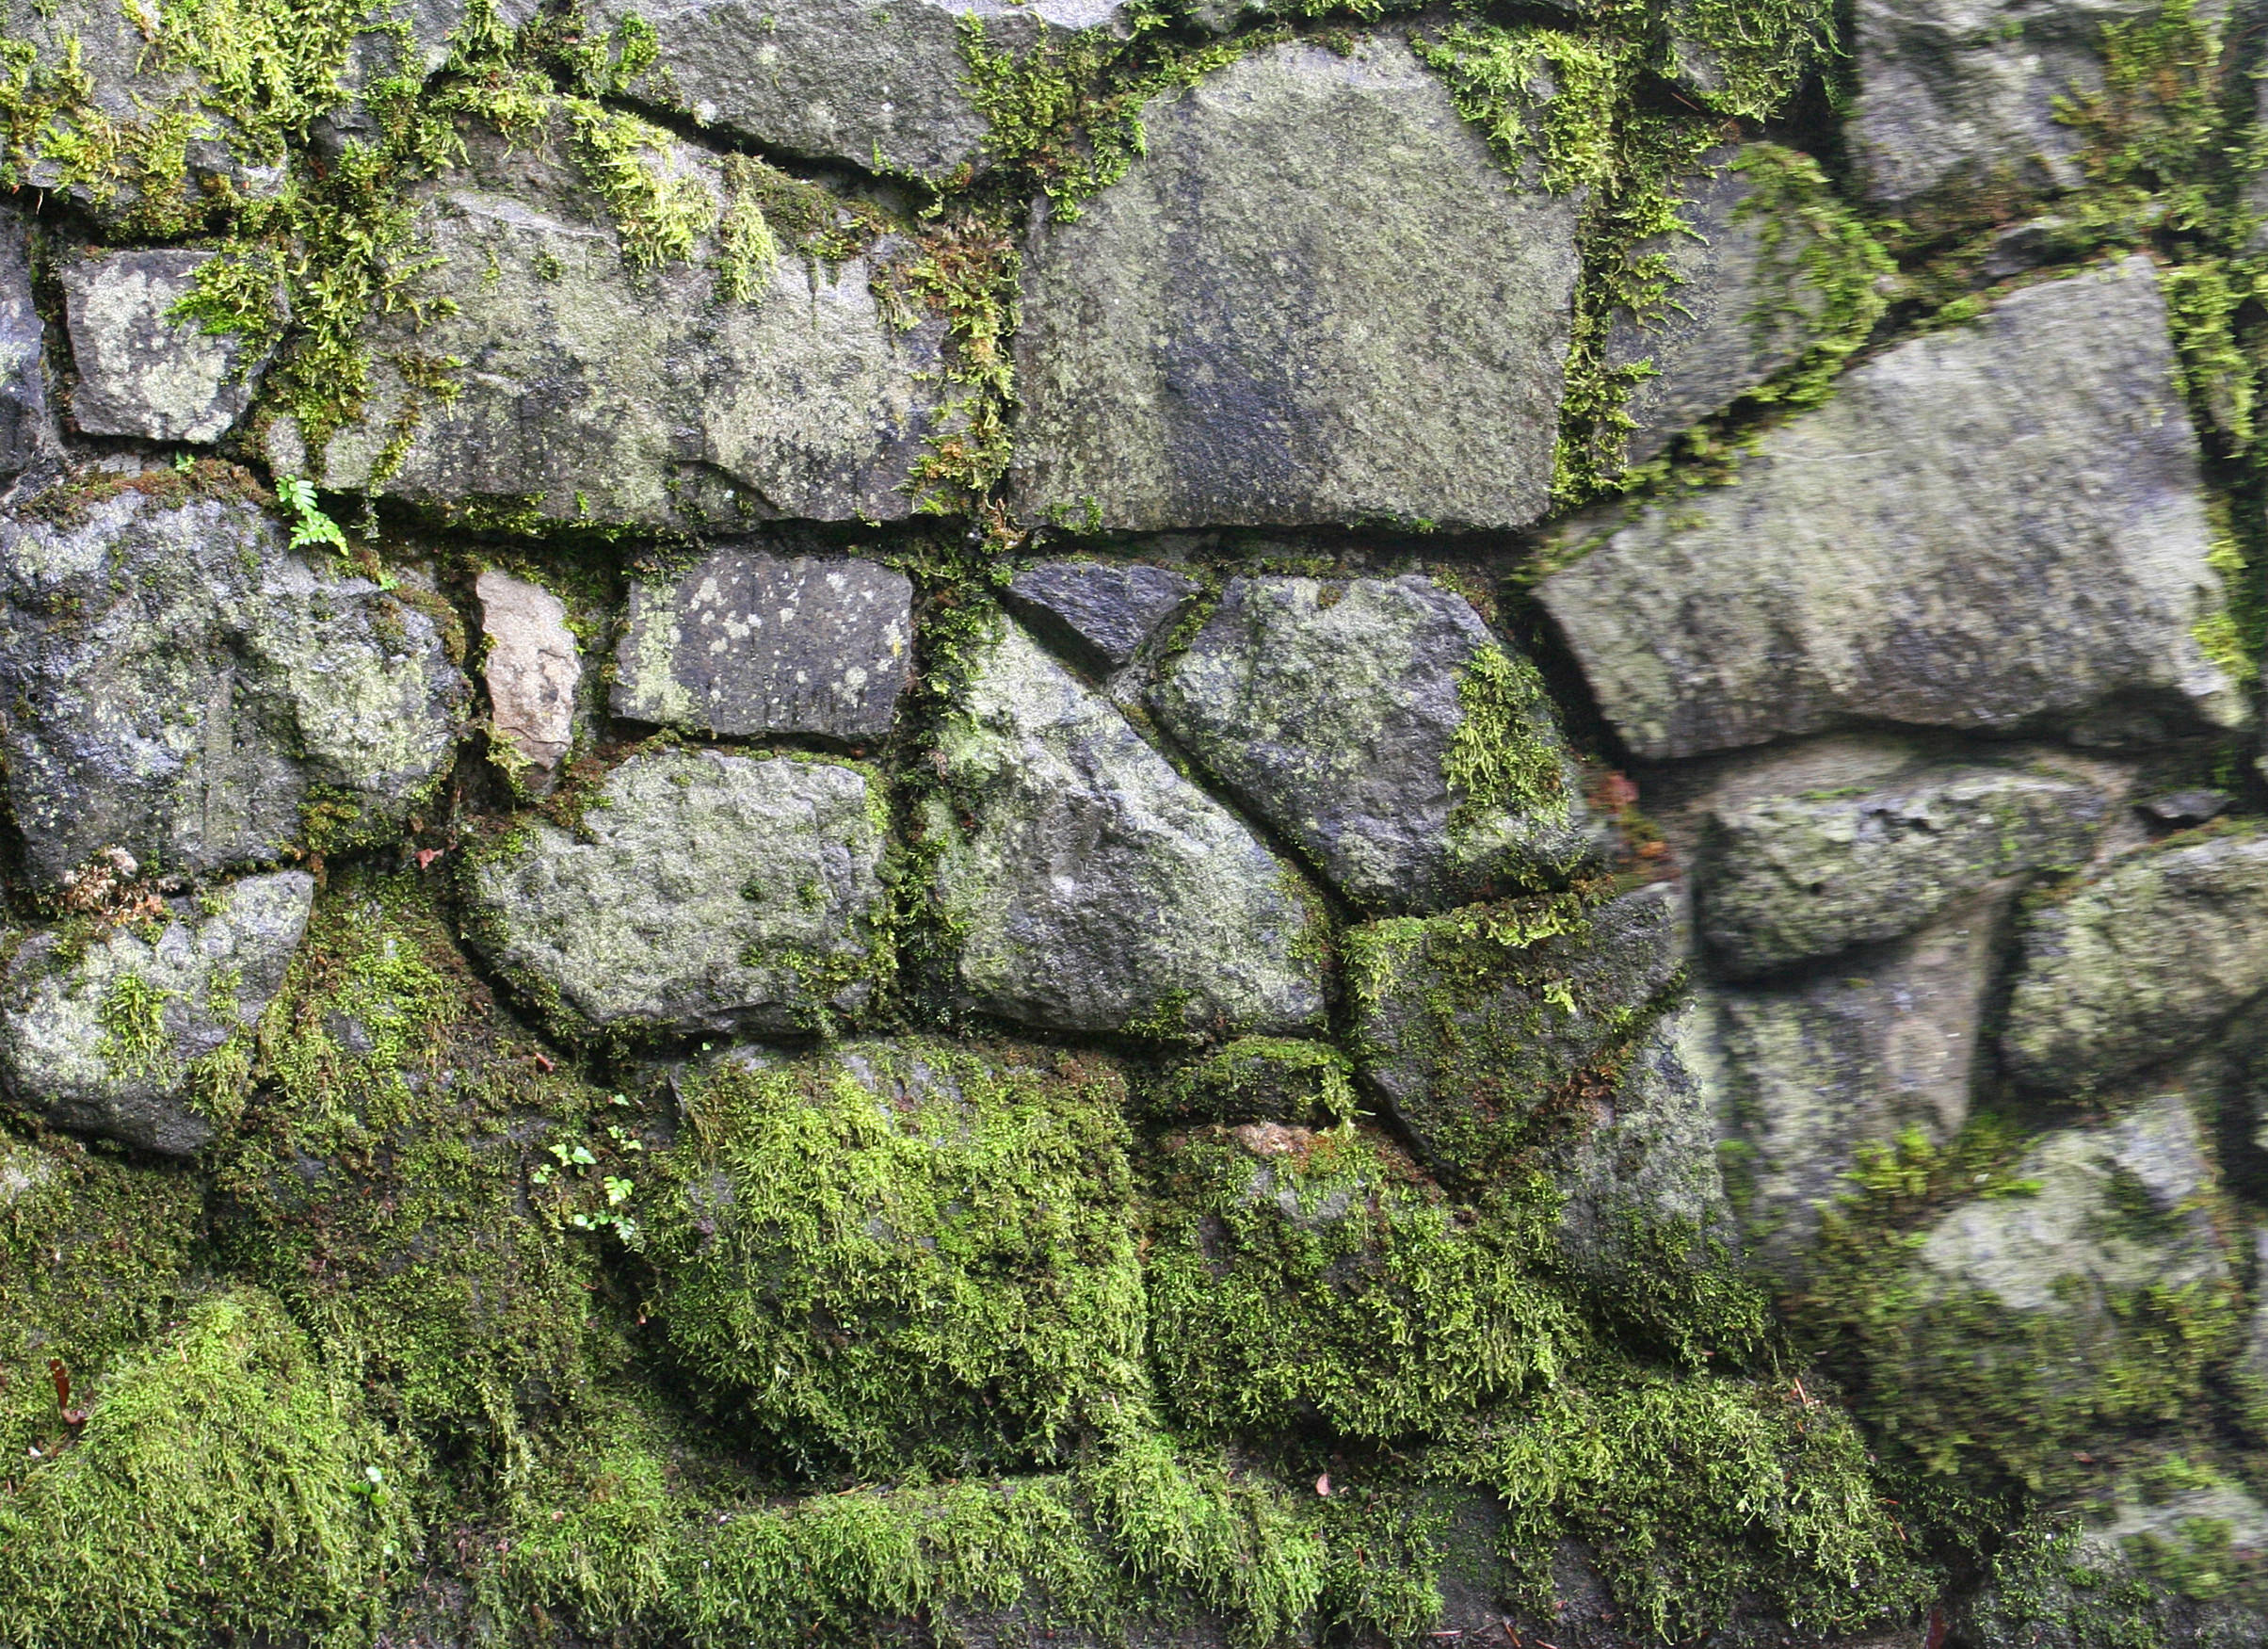 High Def Stone Wall Moss Growth Texture